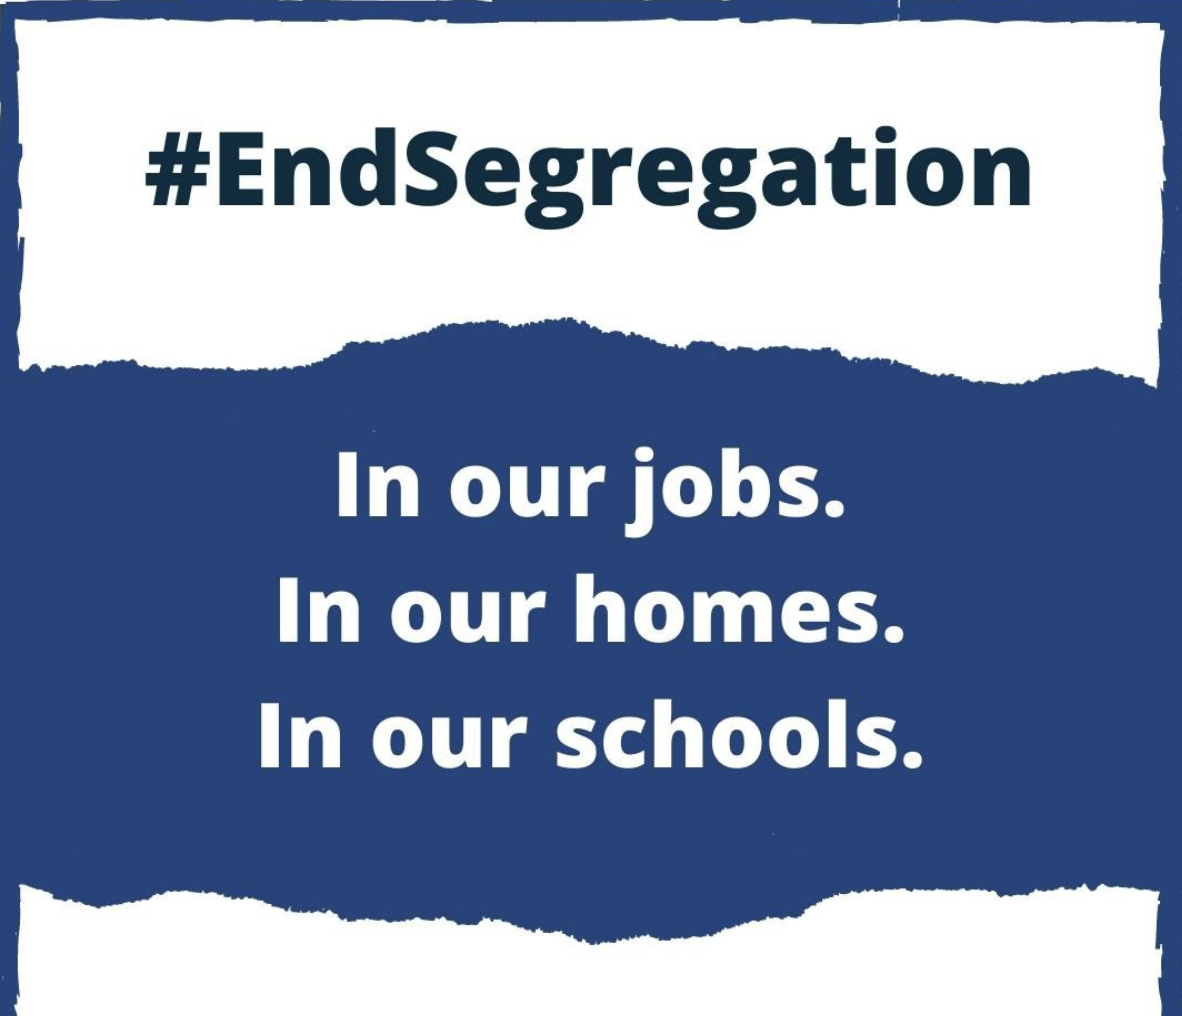 """Text reads: """"#EndSegregation In our jobs. In our homes. In our schools. www.dpoa.org.au/endsegregation"""" Background is blue and white with a torn paper effect."""